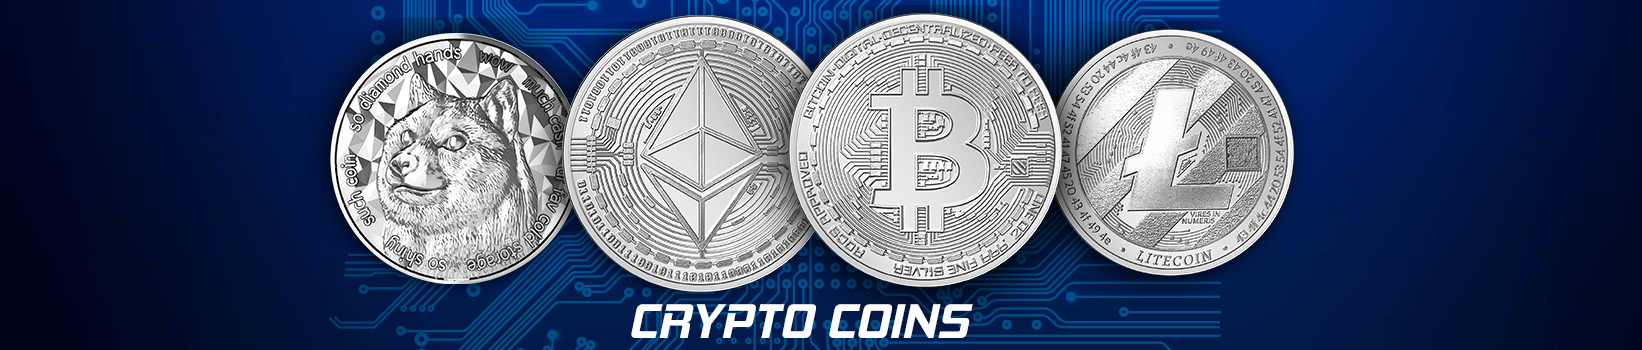 Raw crpyto coins in a row consisting of Bitcoin, Litecoin, Ethereum, and Dogecoin with a technical pattern background